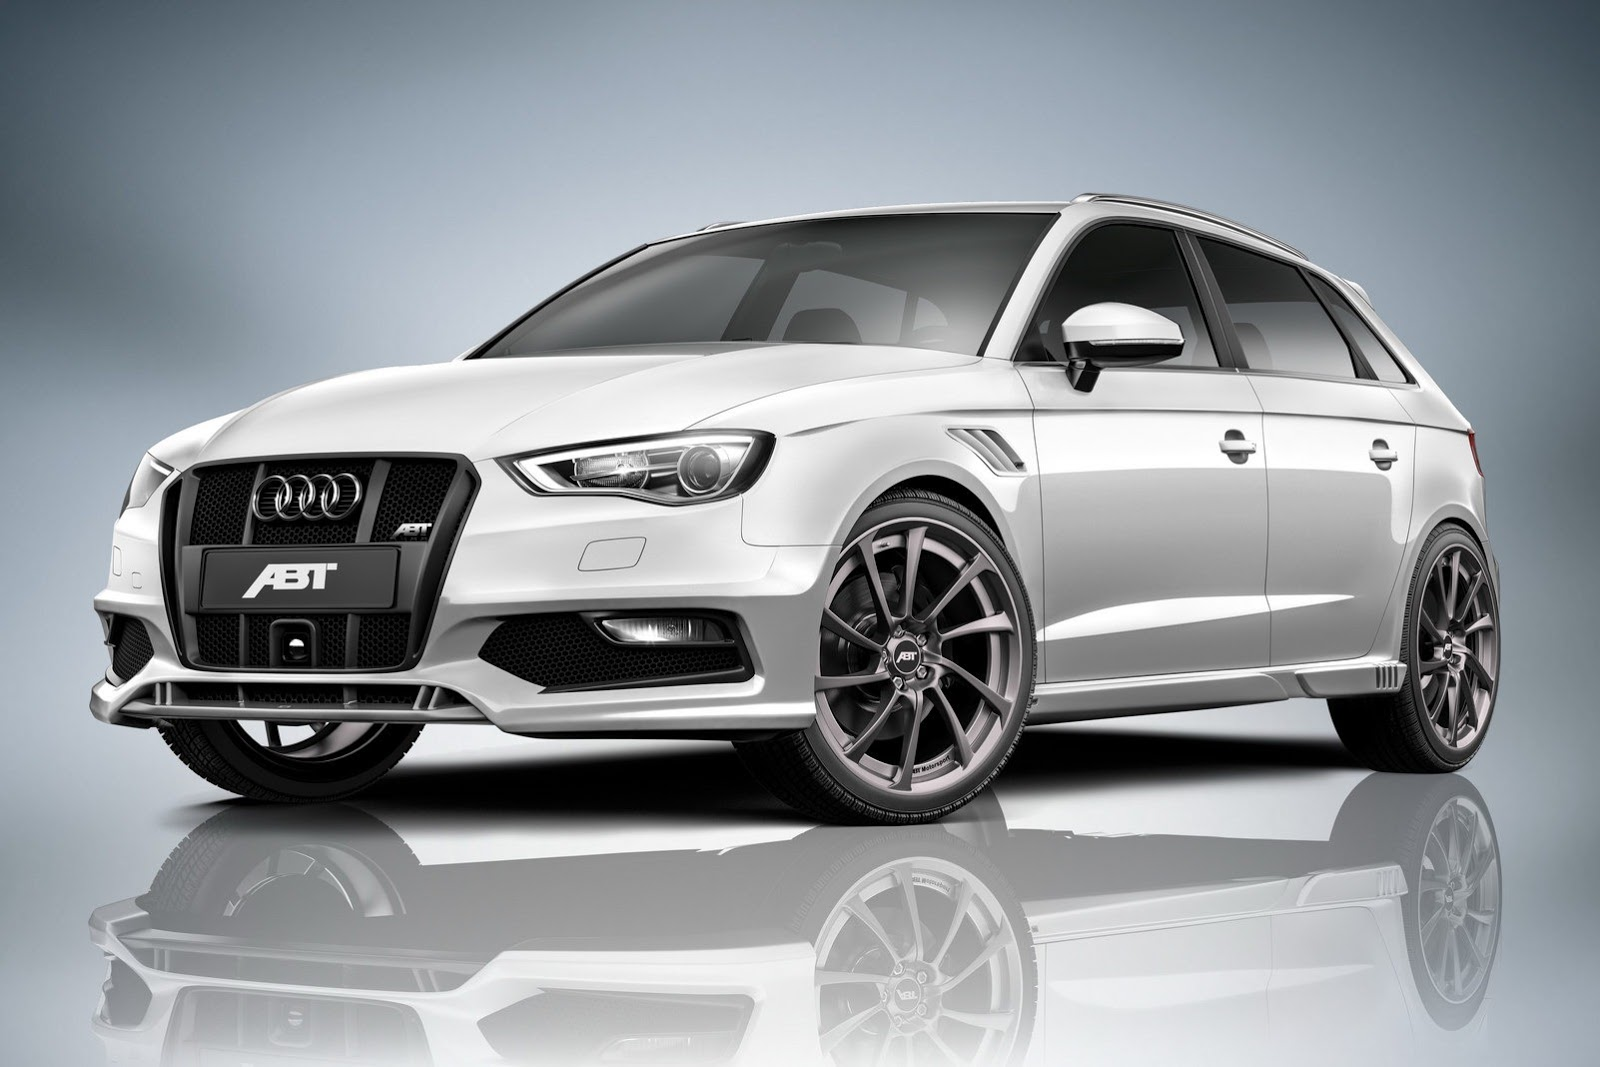 2013 audi a3 sportback tuned by abt autoevolution. Black Bedroom Furniture Sets. Home Design Ideas